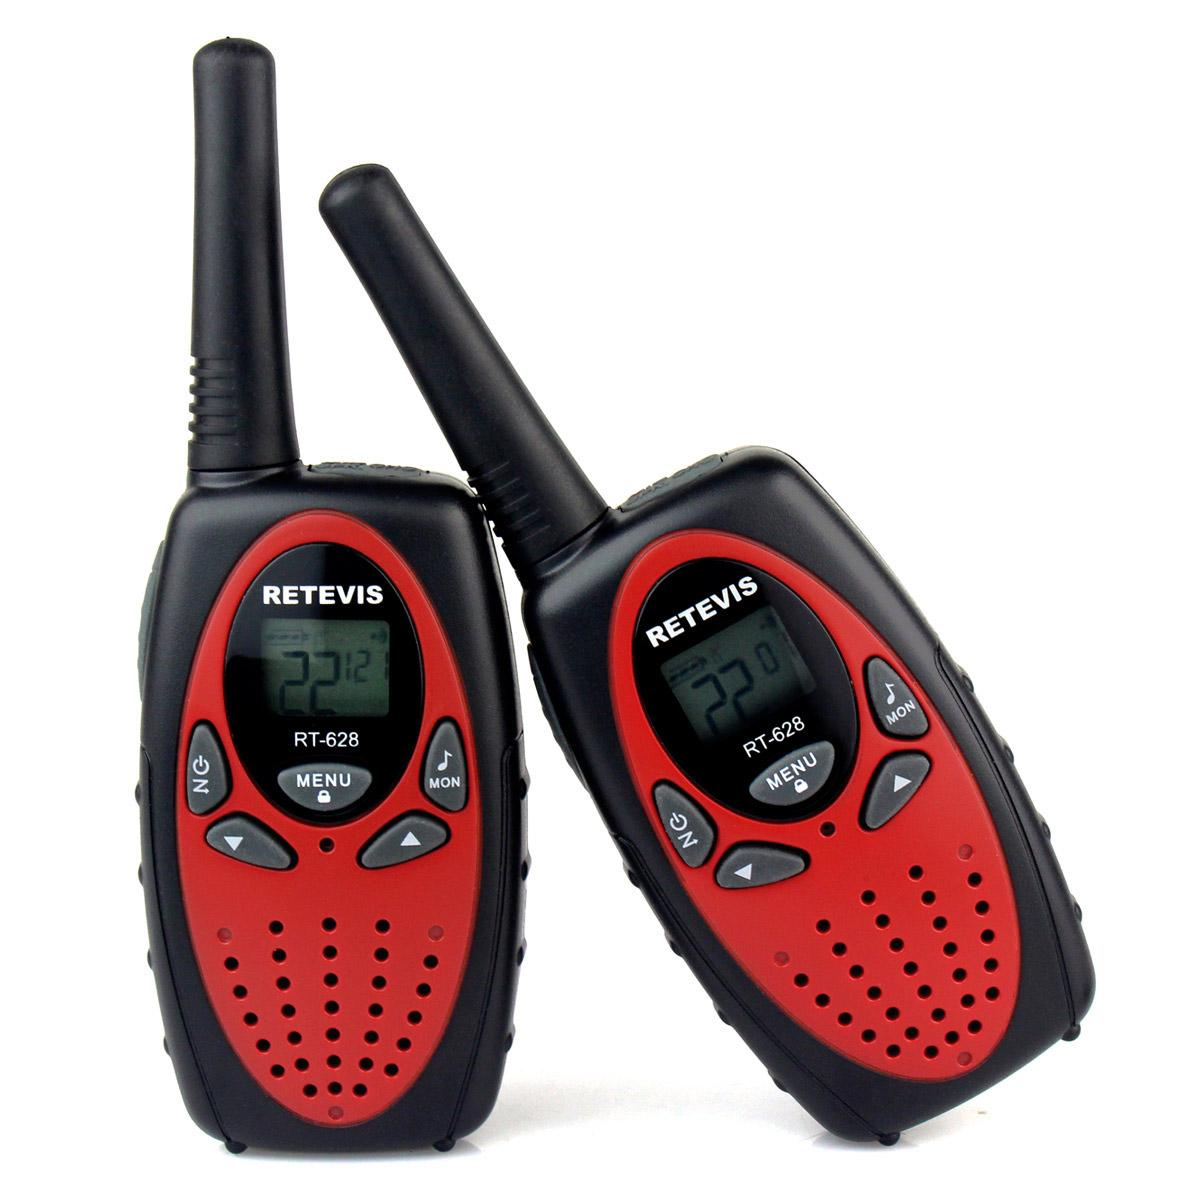 retevis rt628 new red walkie talkie uhf usa frequency 462 467mhz 22ch portable two way. Black Bedroom Furniture Sets. Home Design Ideas